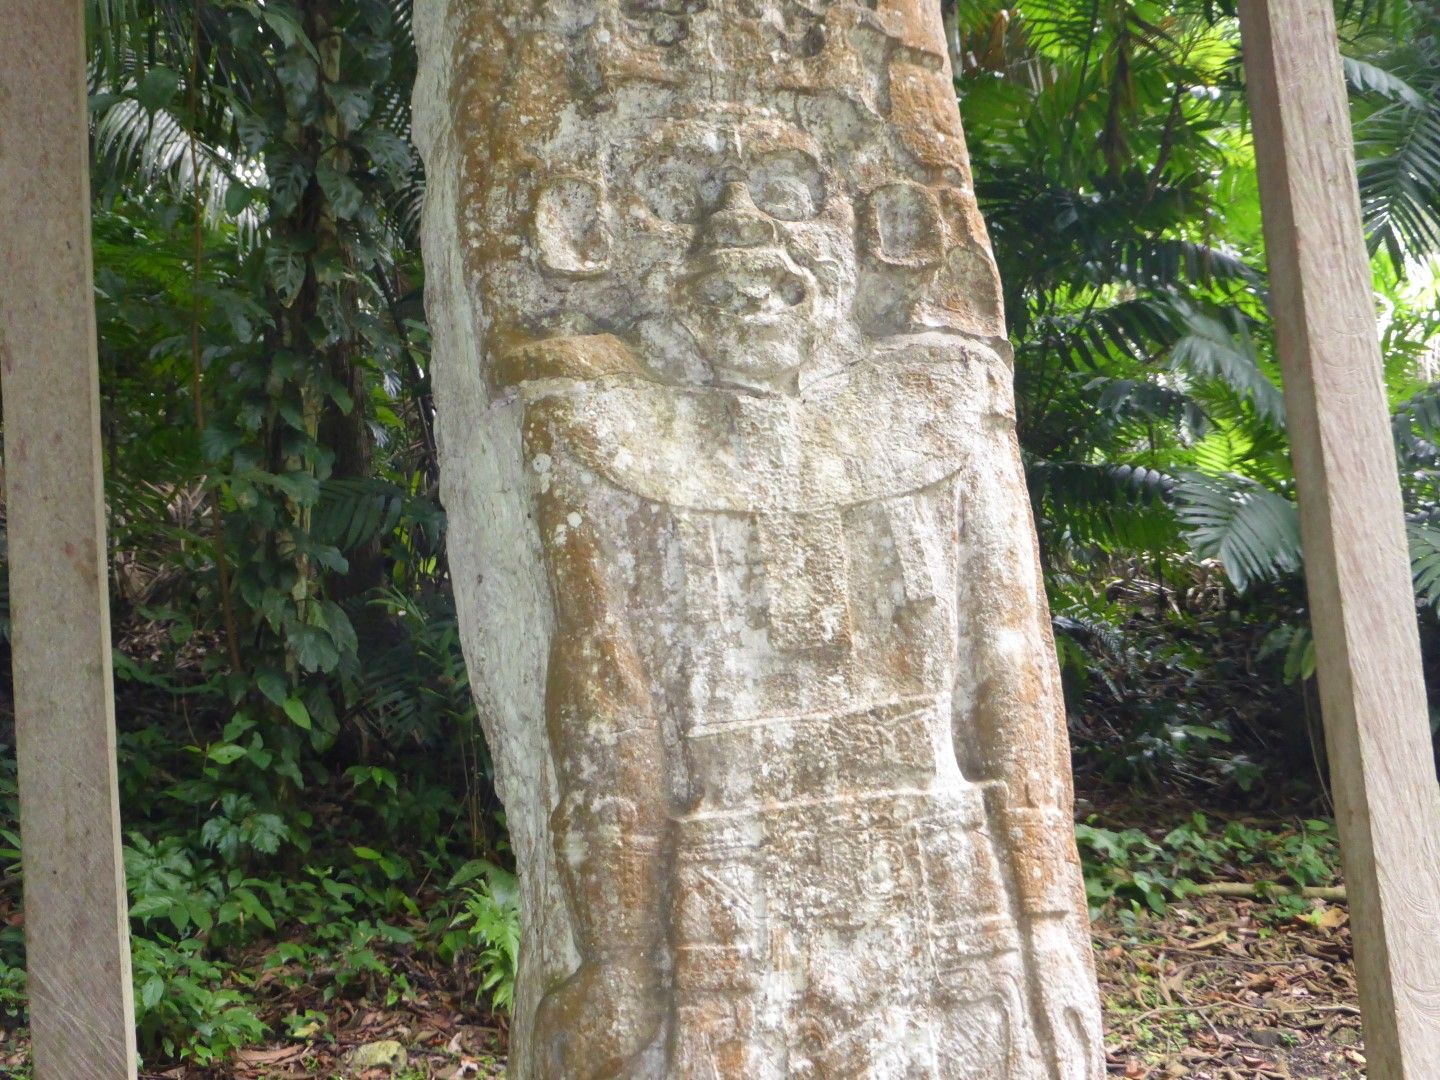 Stelae at Ceibal in Guatemala